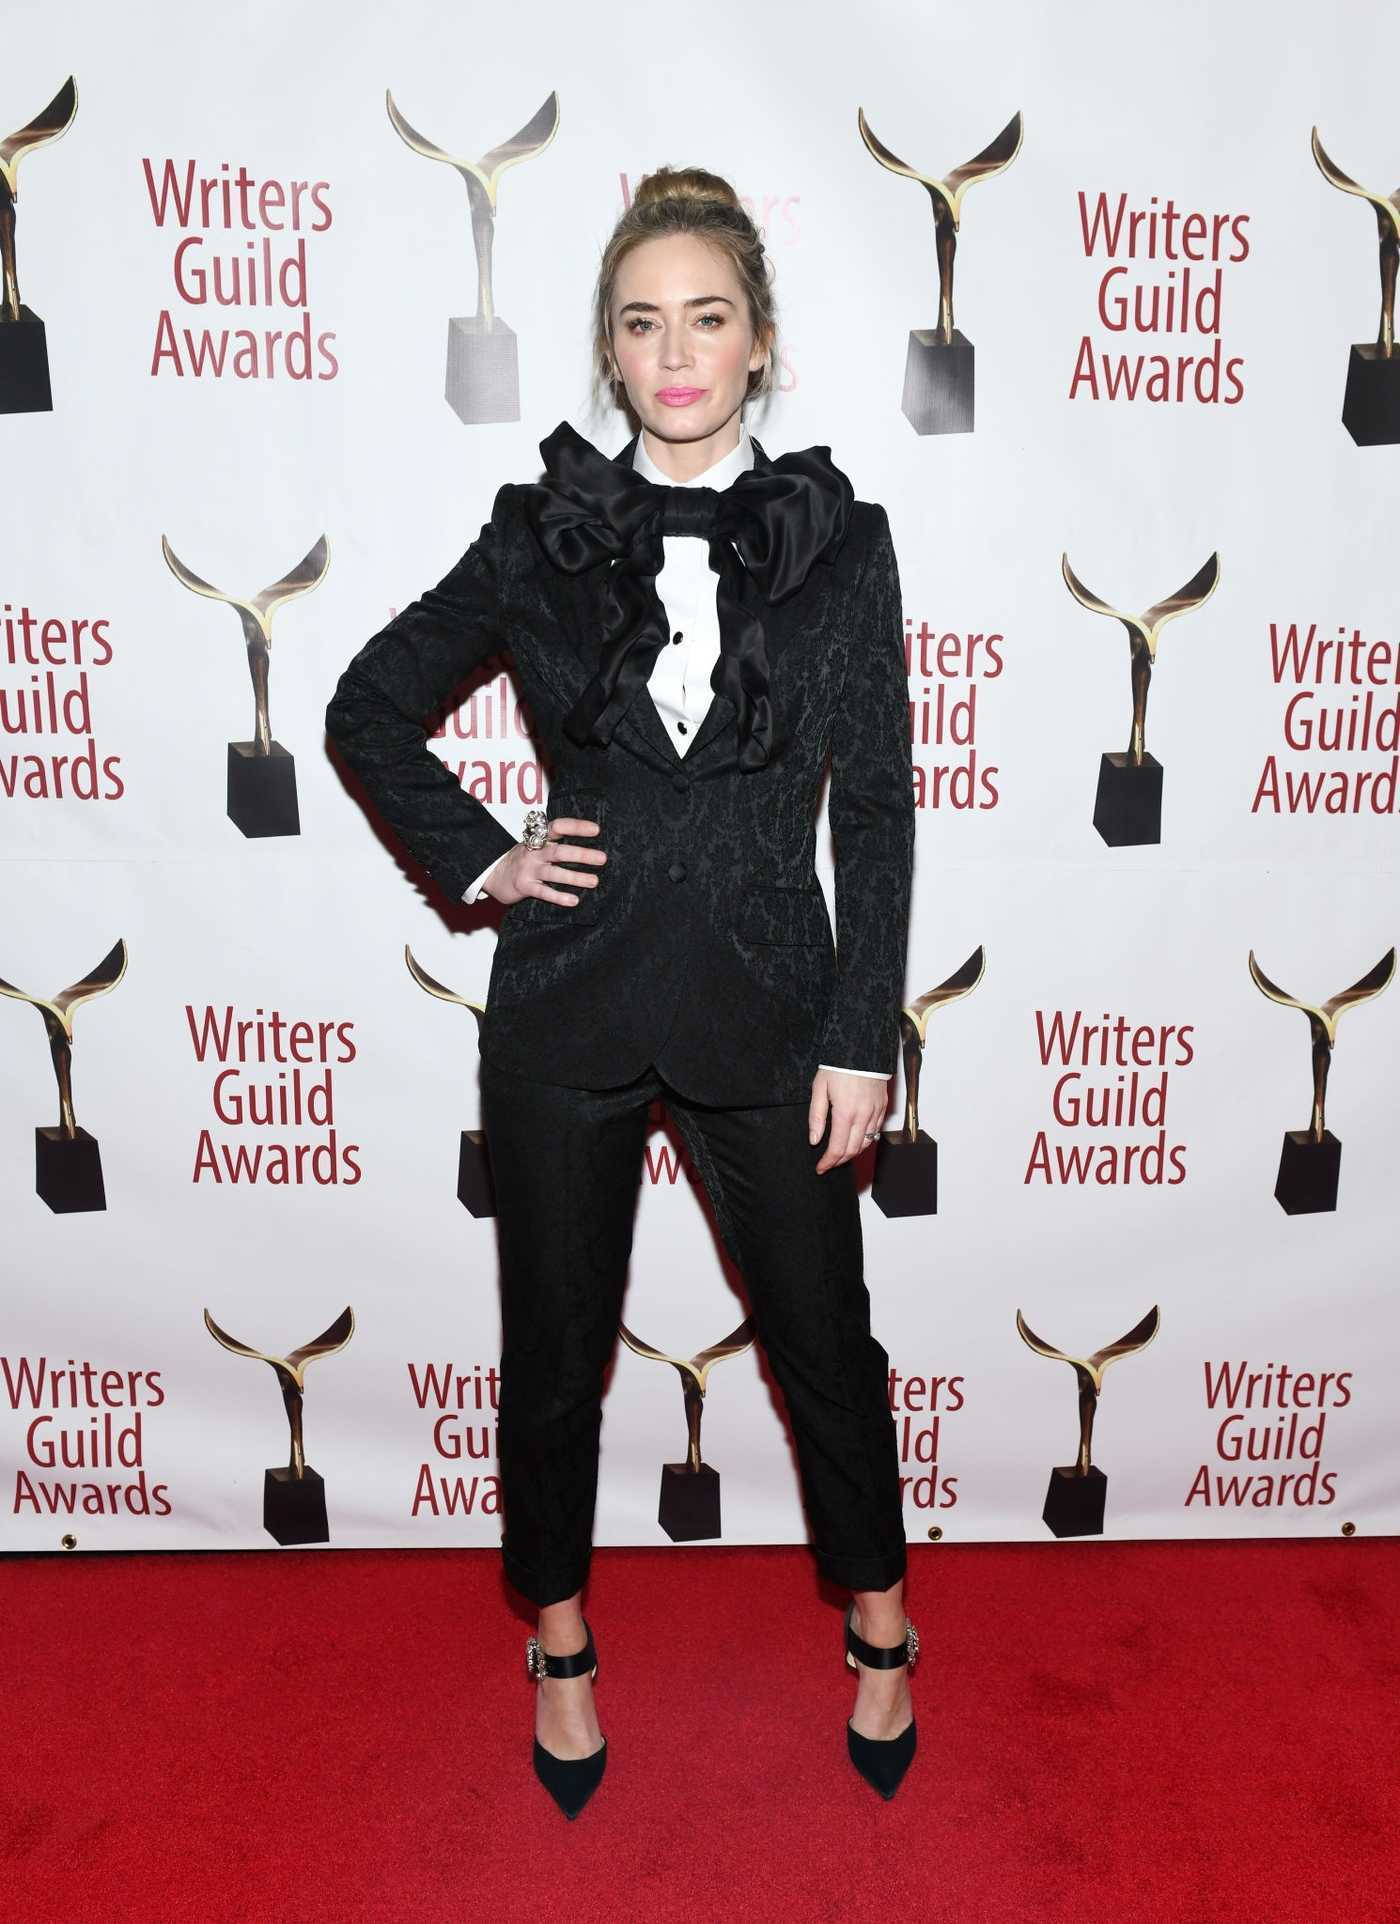 Emily Blunt Attends the 71st Annual Writers Guild Awards in Los Angeles 02/17/2019